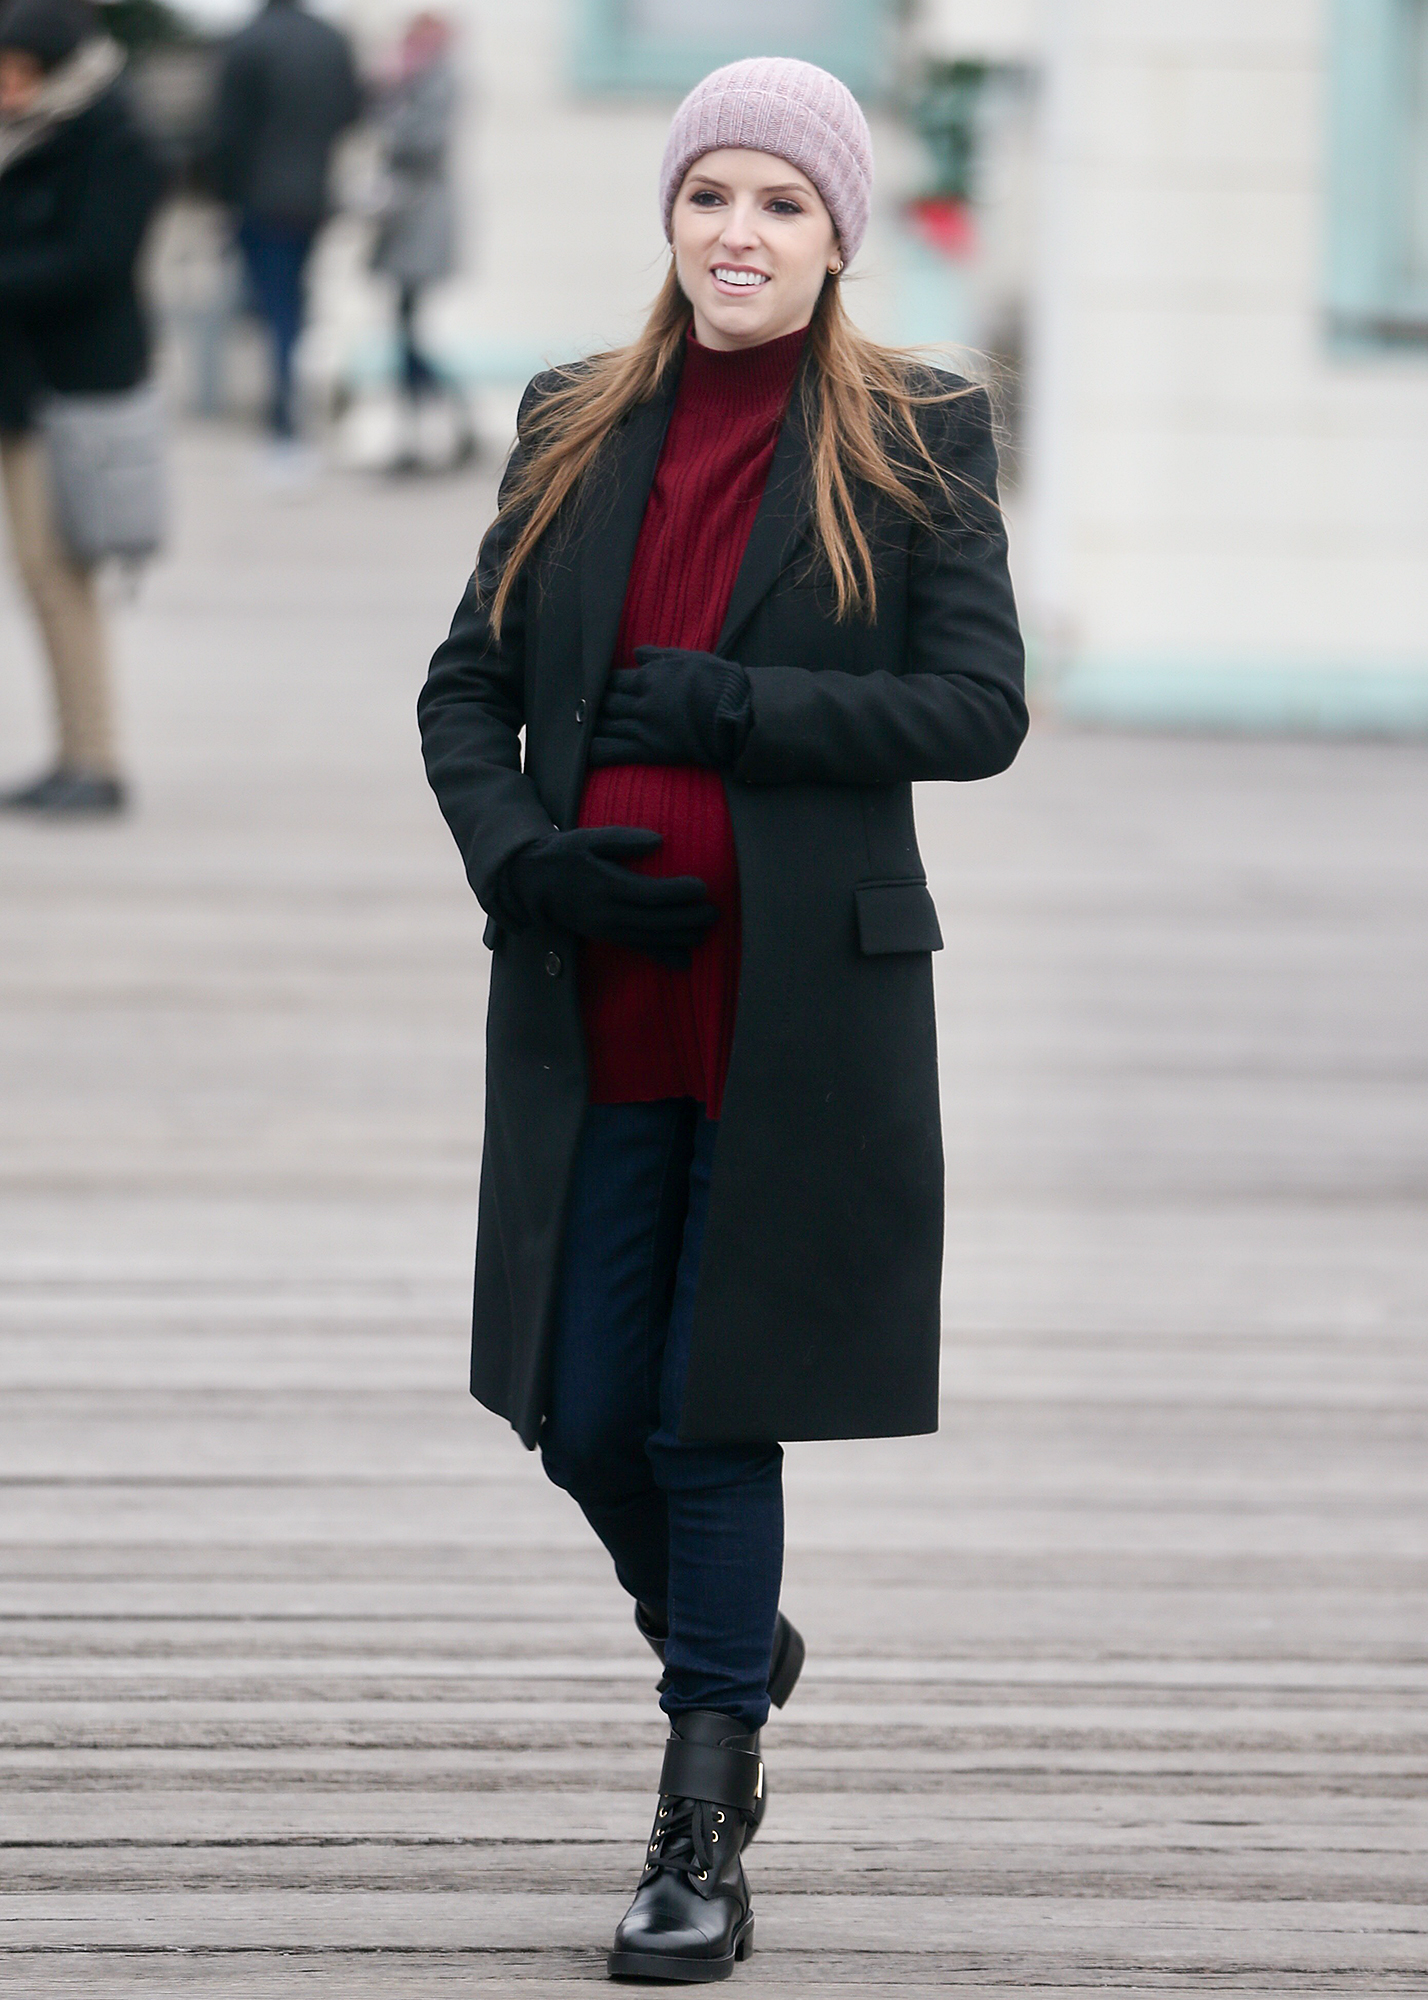 """Anna Kendrick holds a baby bump as she shoots a scene for the HBO' series, """"Love Life"""" in Brooklyn this morning. 16 Dec 2019"""